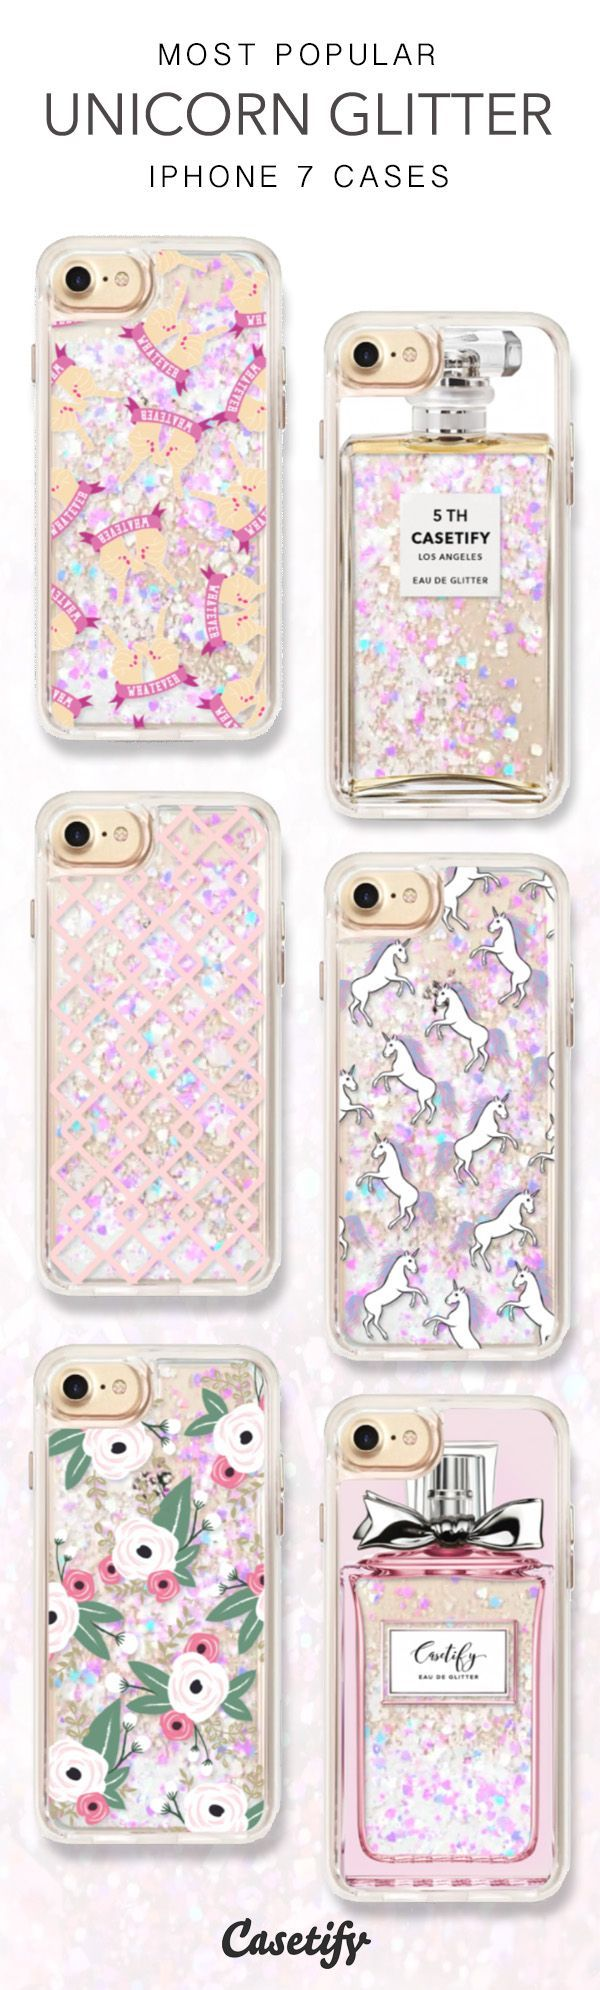 Most Popular Unicorn Glitter iPhone 7 Cases here > https://www.casetify.com/collections/iphone-7-glitter-cases#